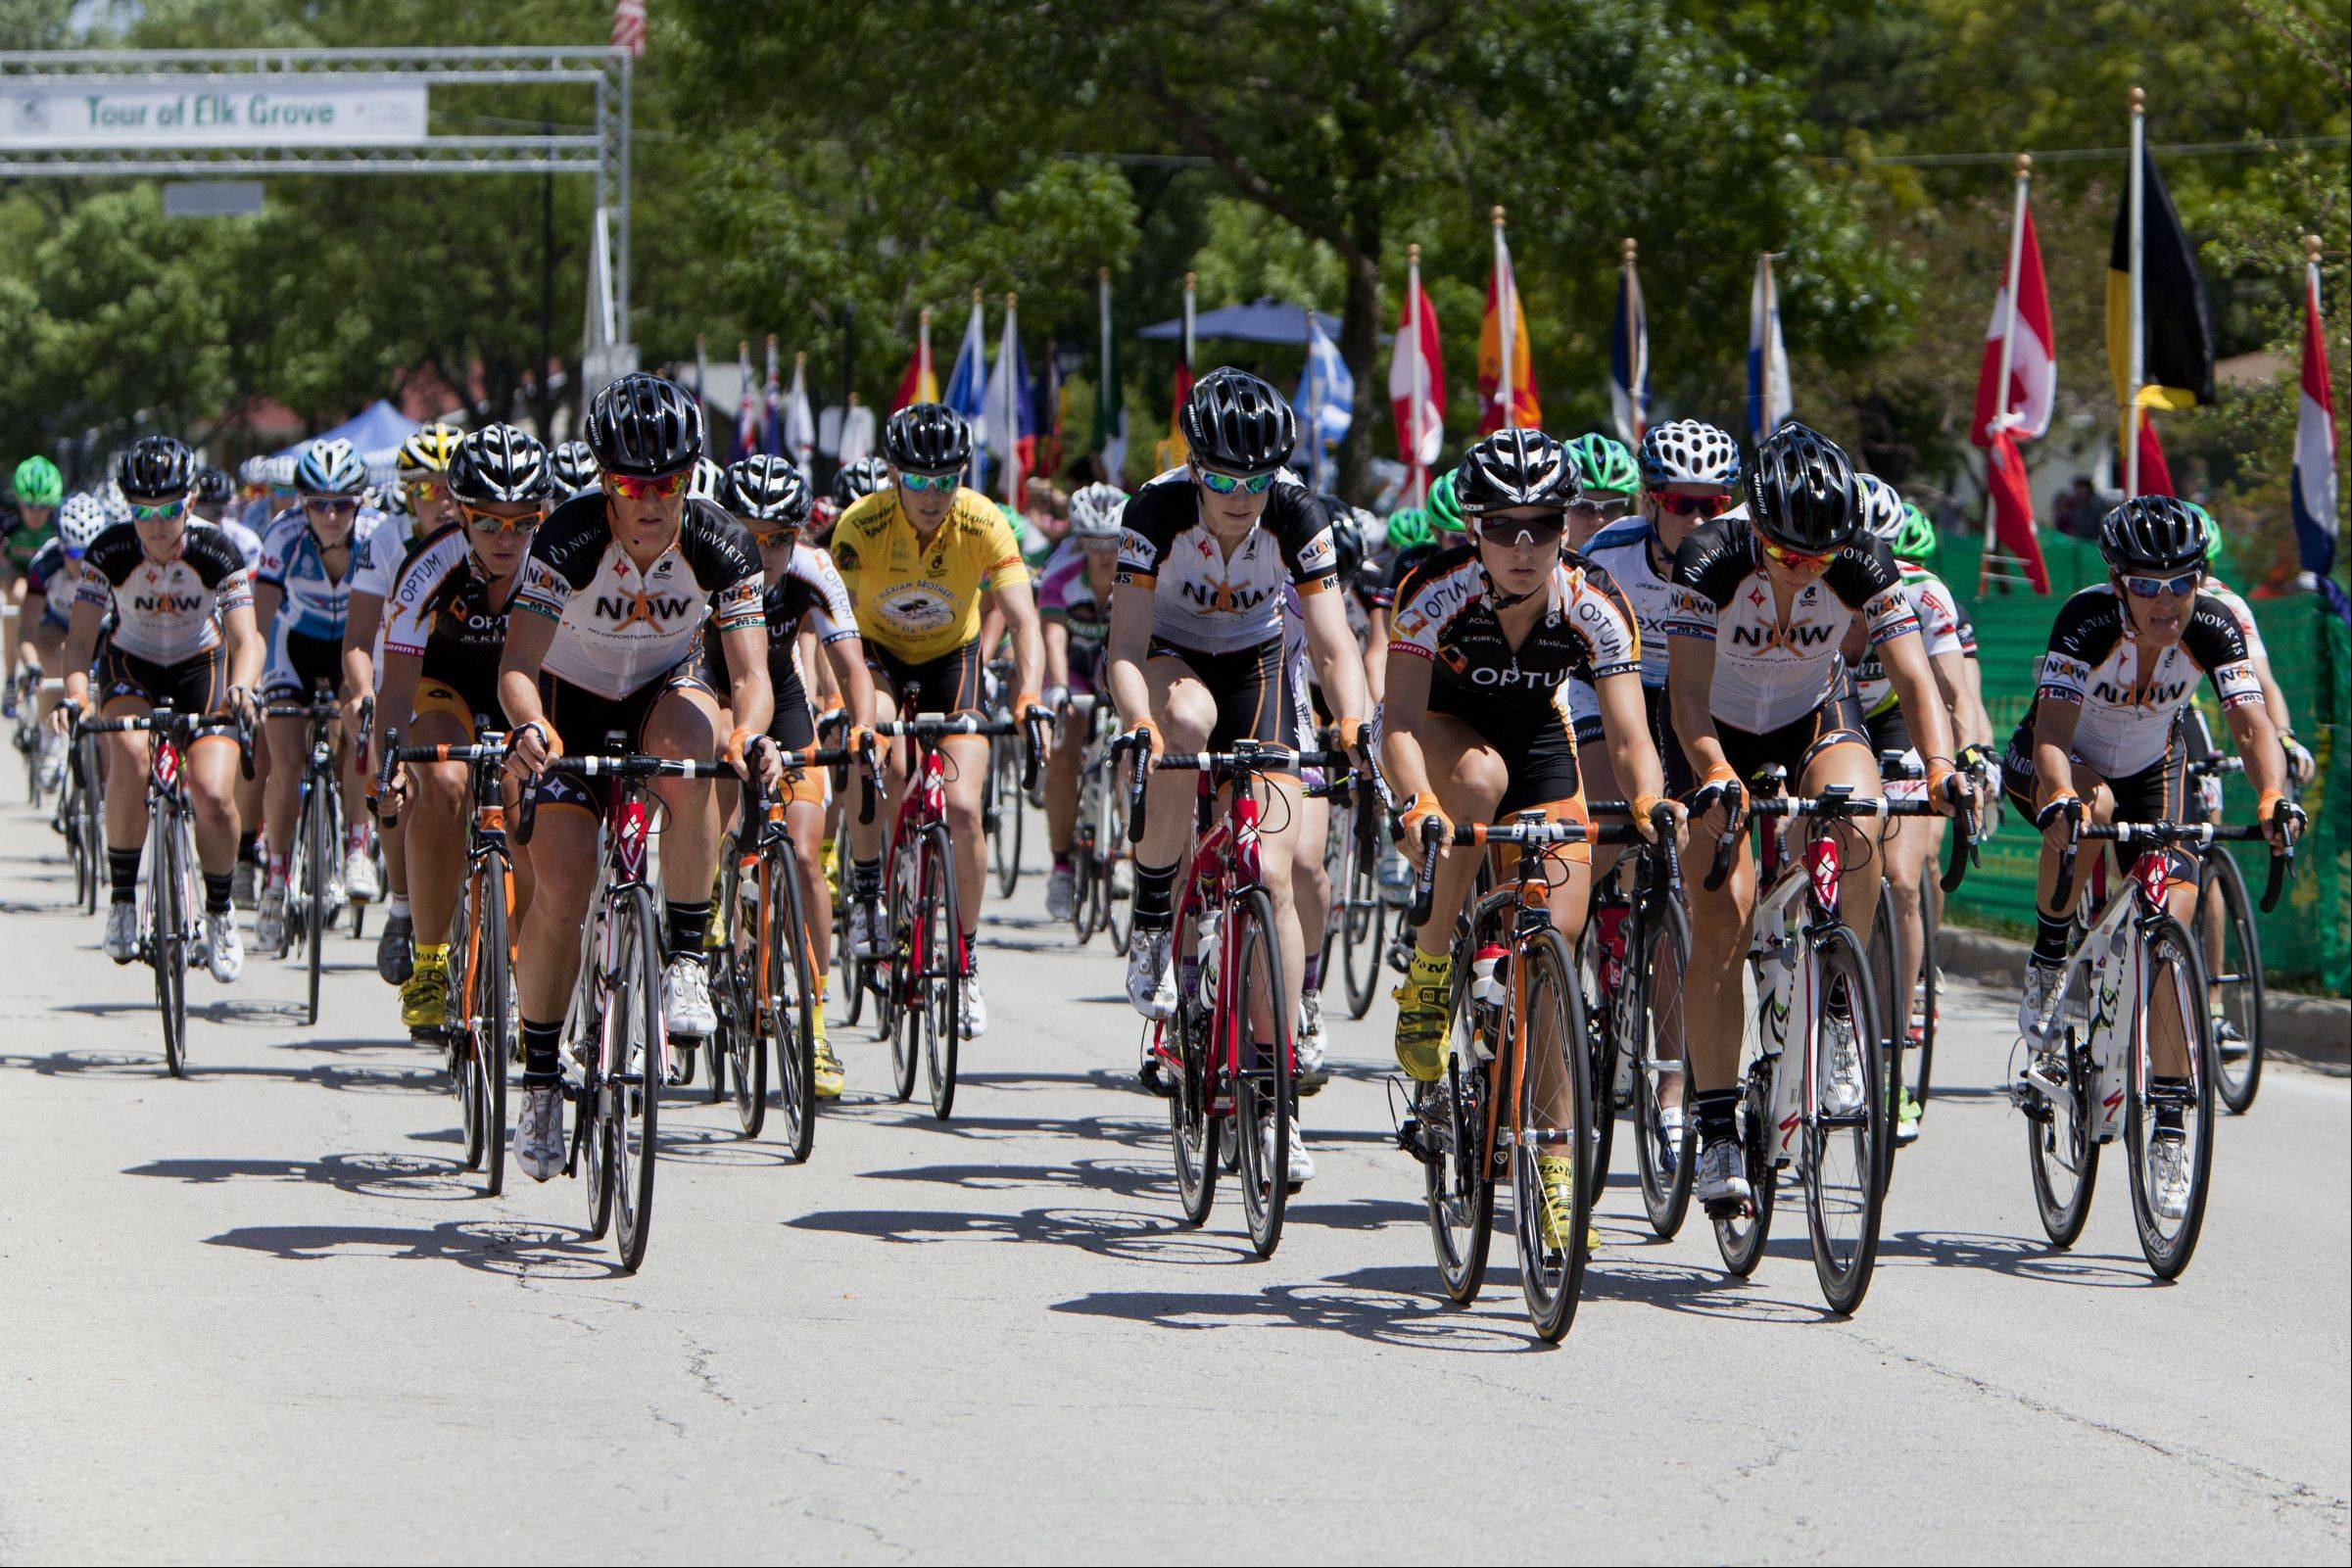 The pro women's field gets started Sunday in the third stage of the Tour of Elk Grove.